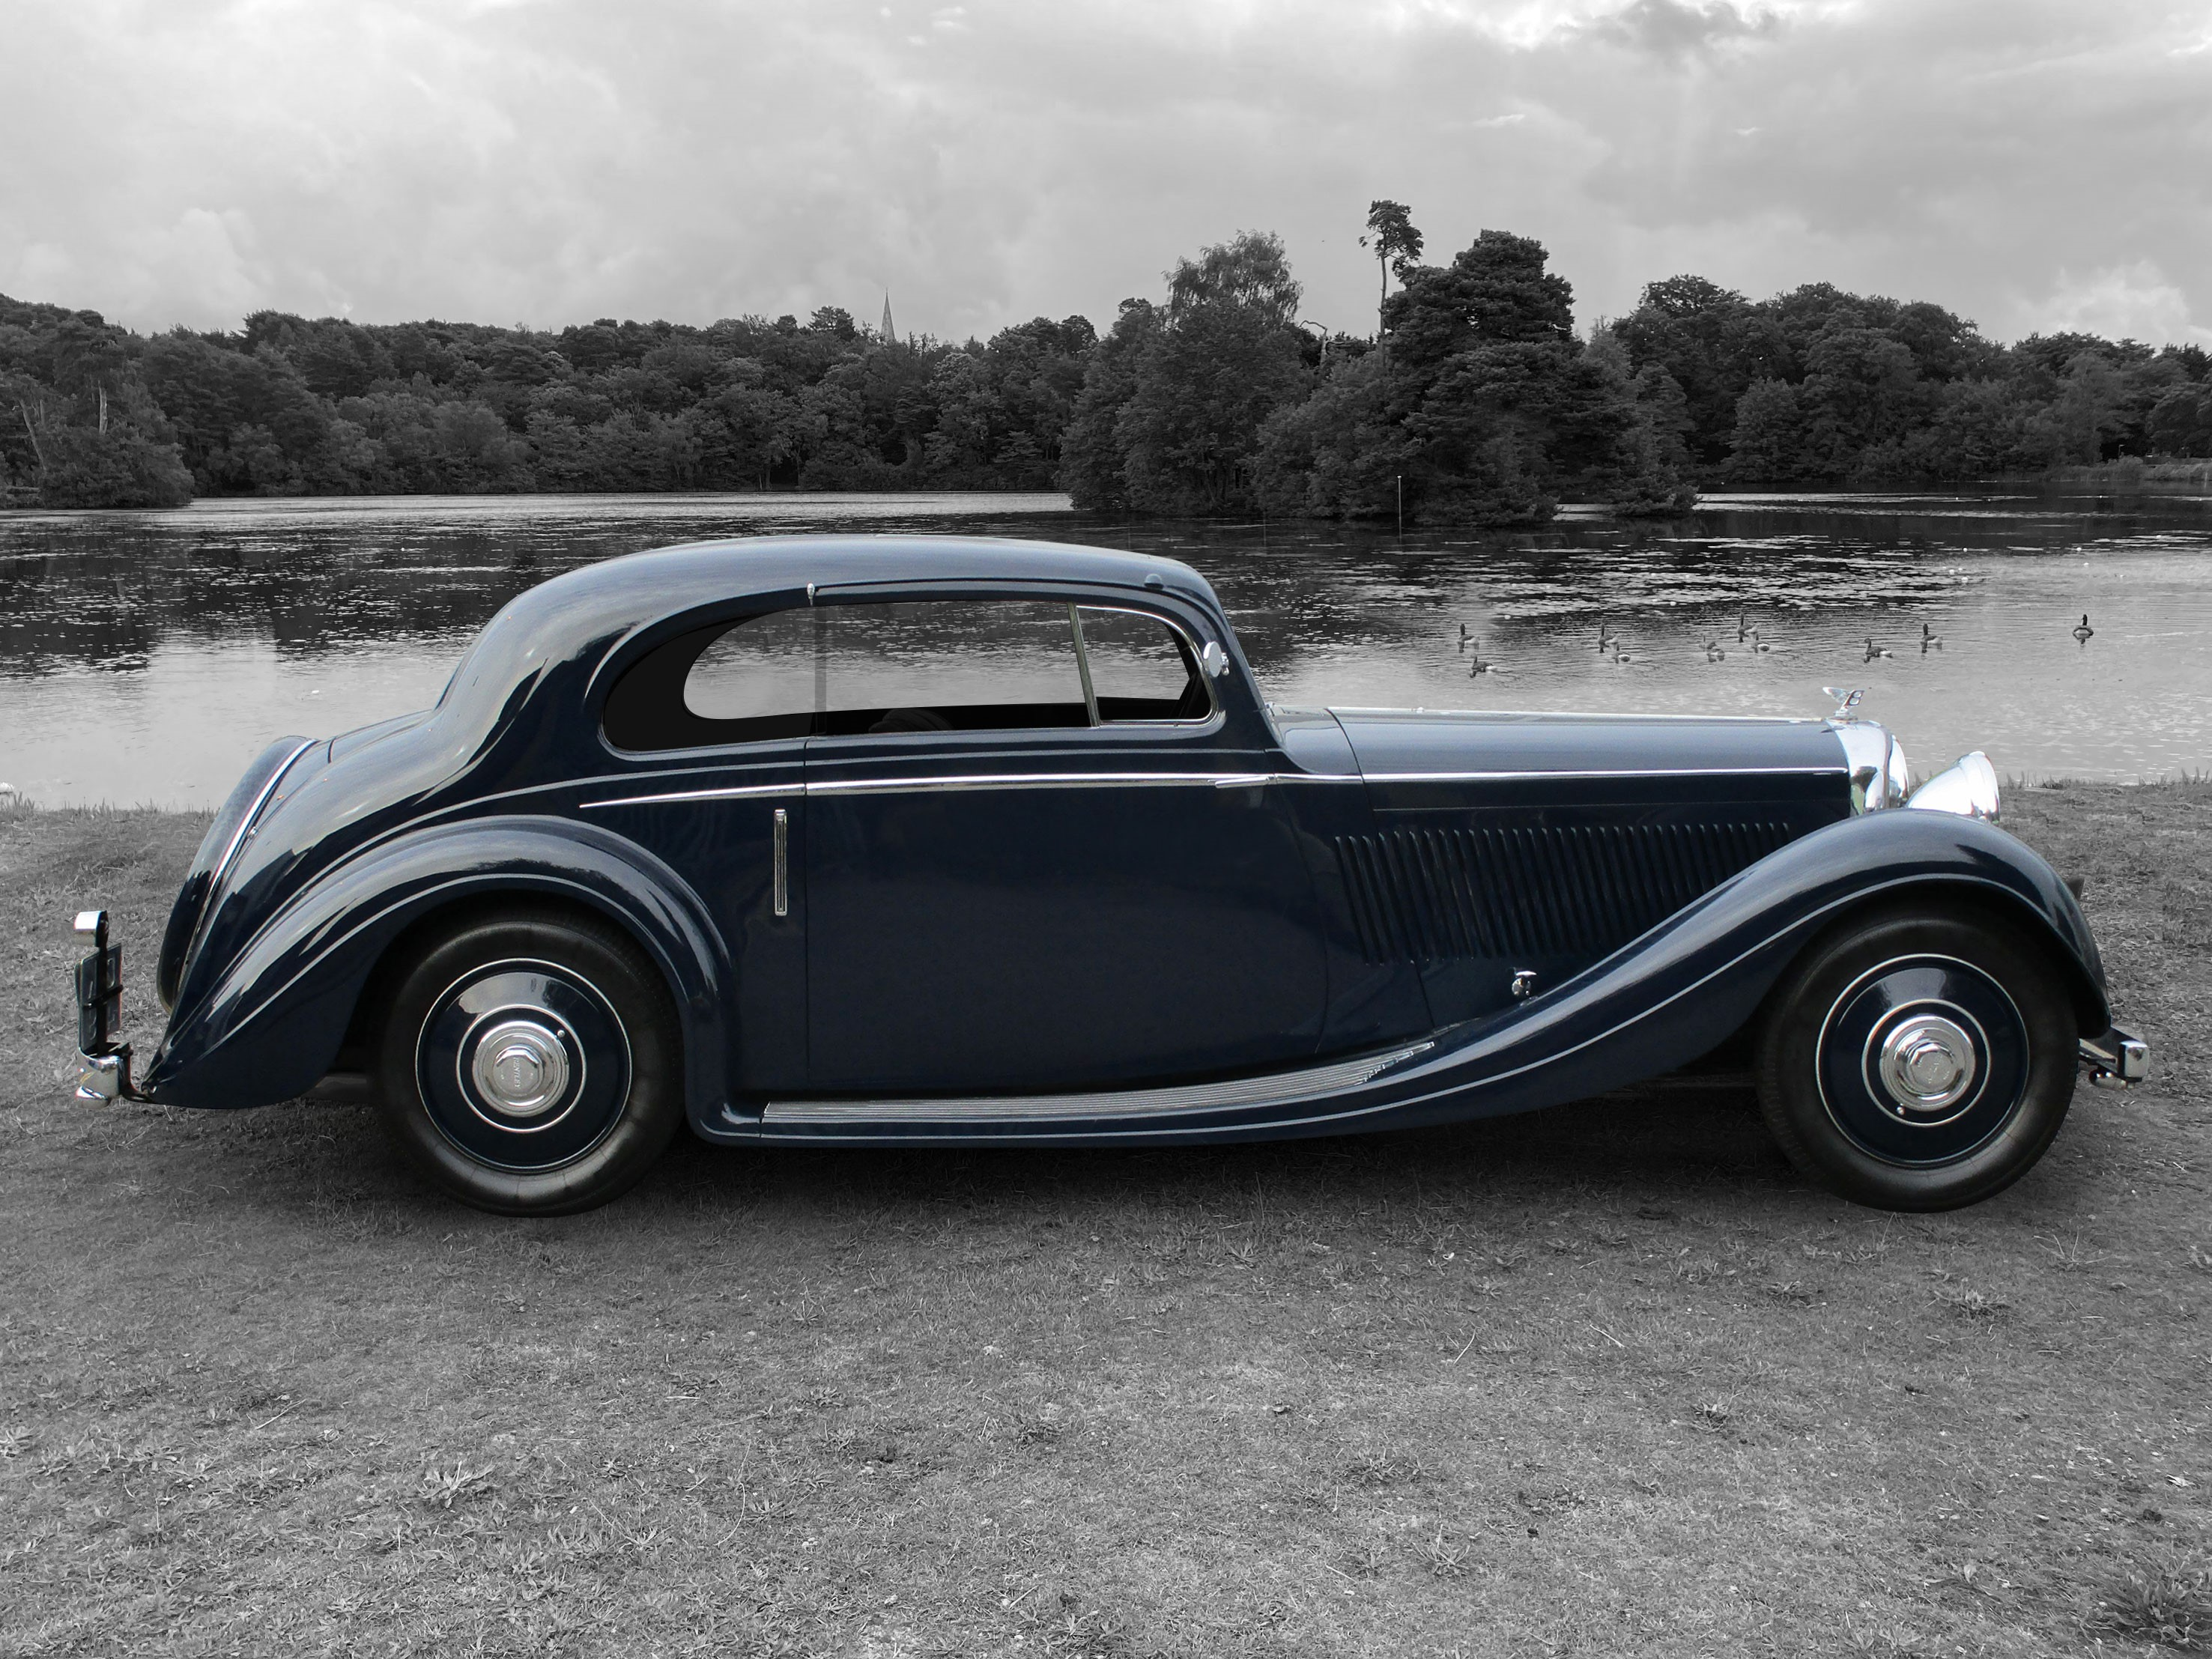 1936 Bentley 3 1/2 Litre Curvilinear Coupe by Gurney Nutting